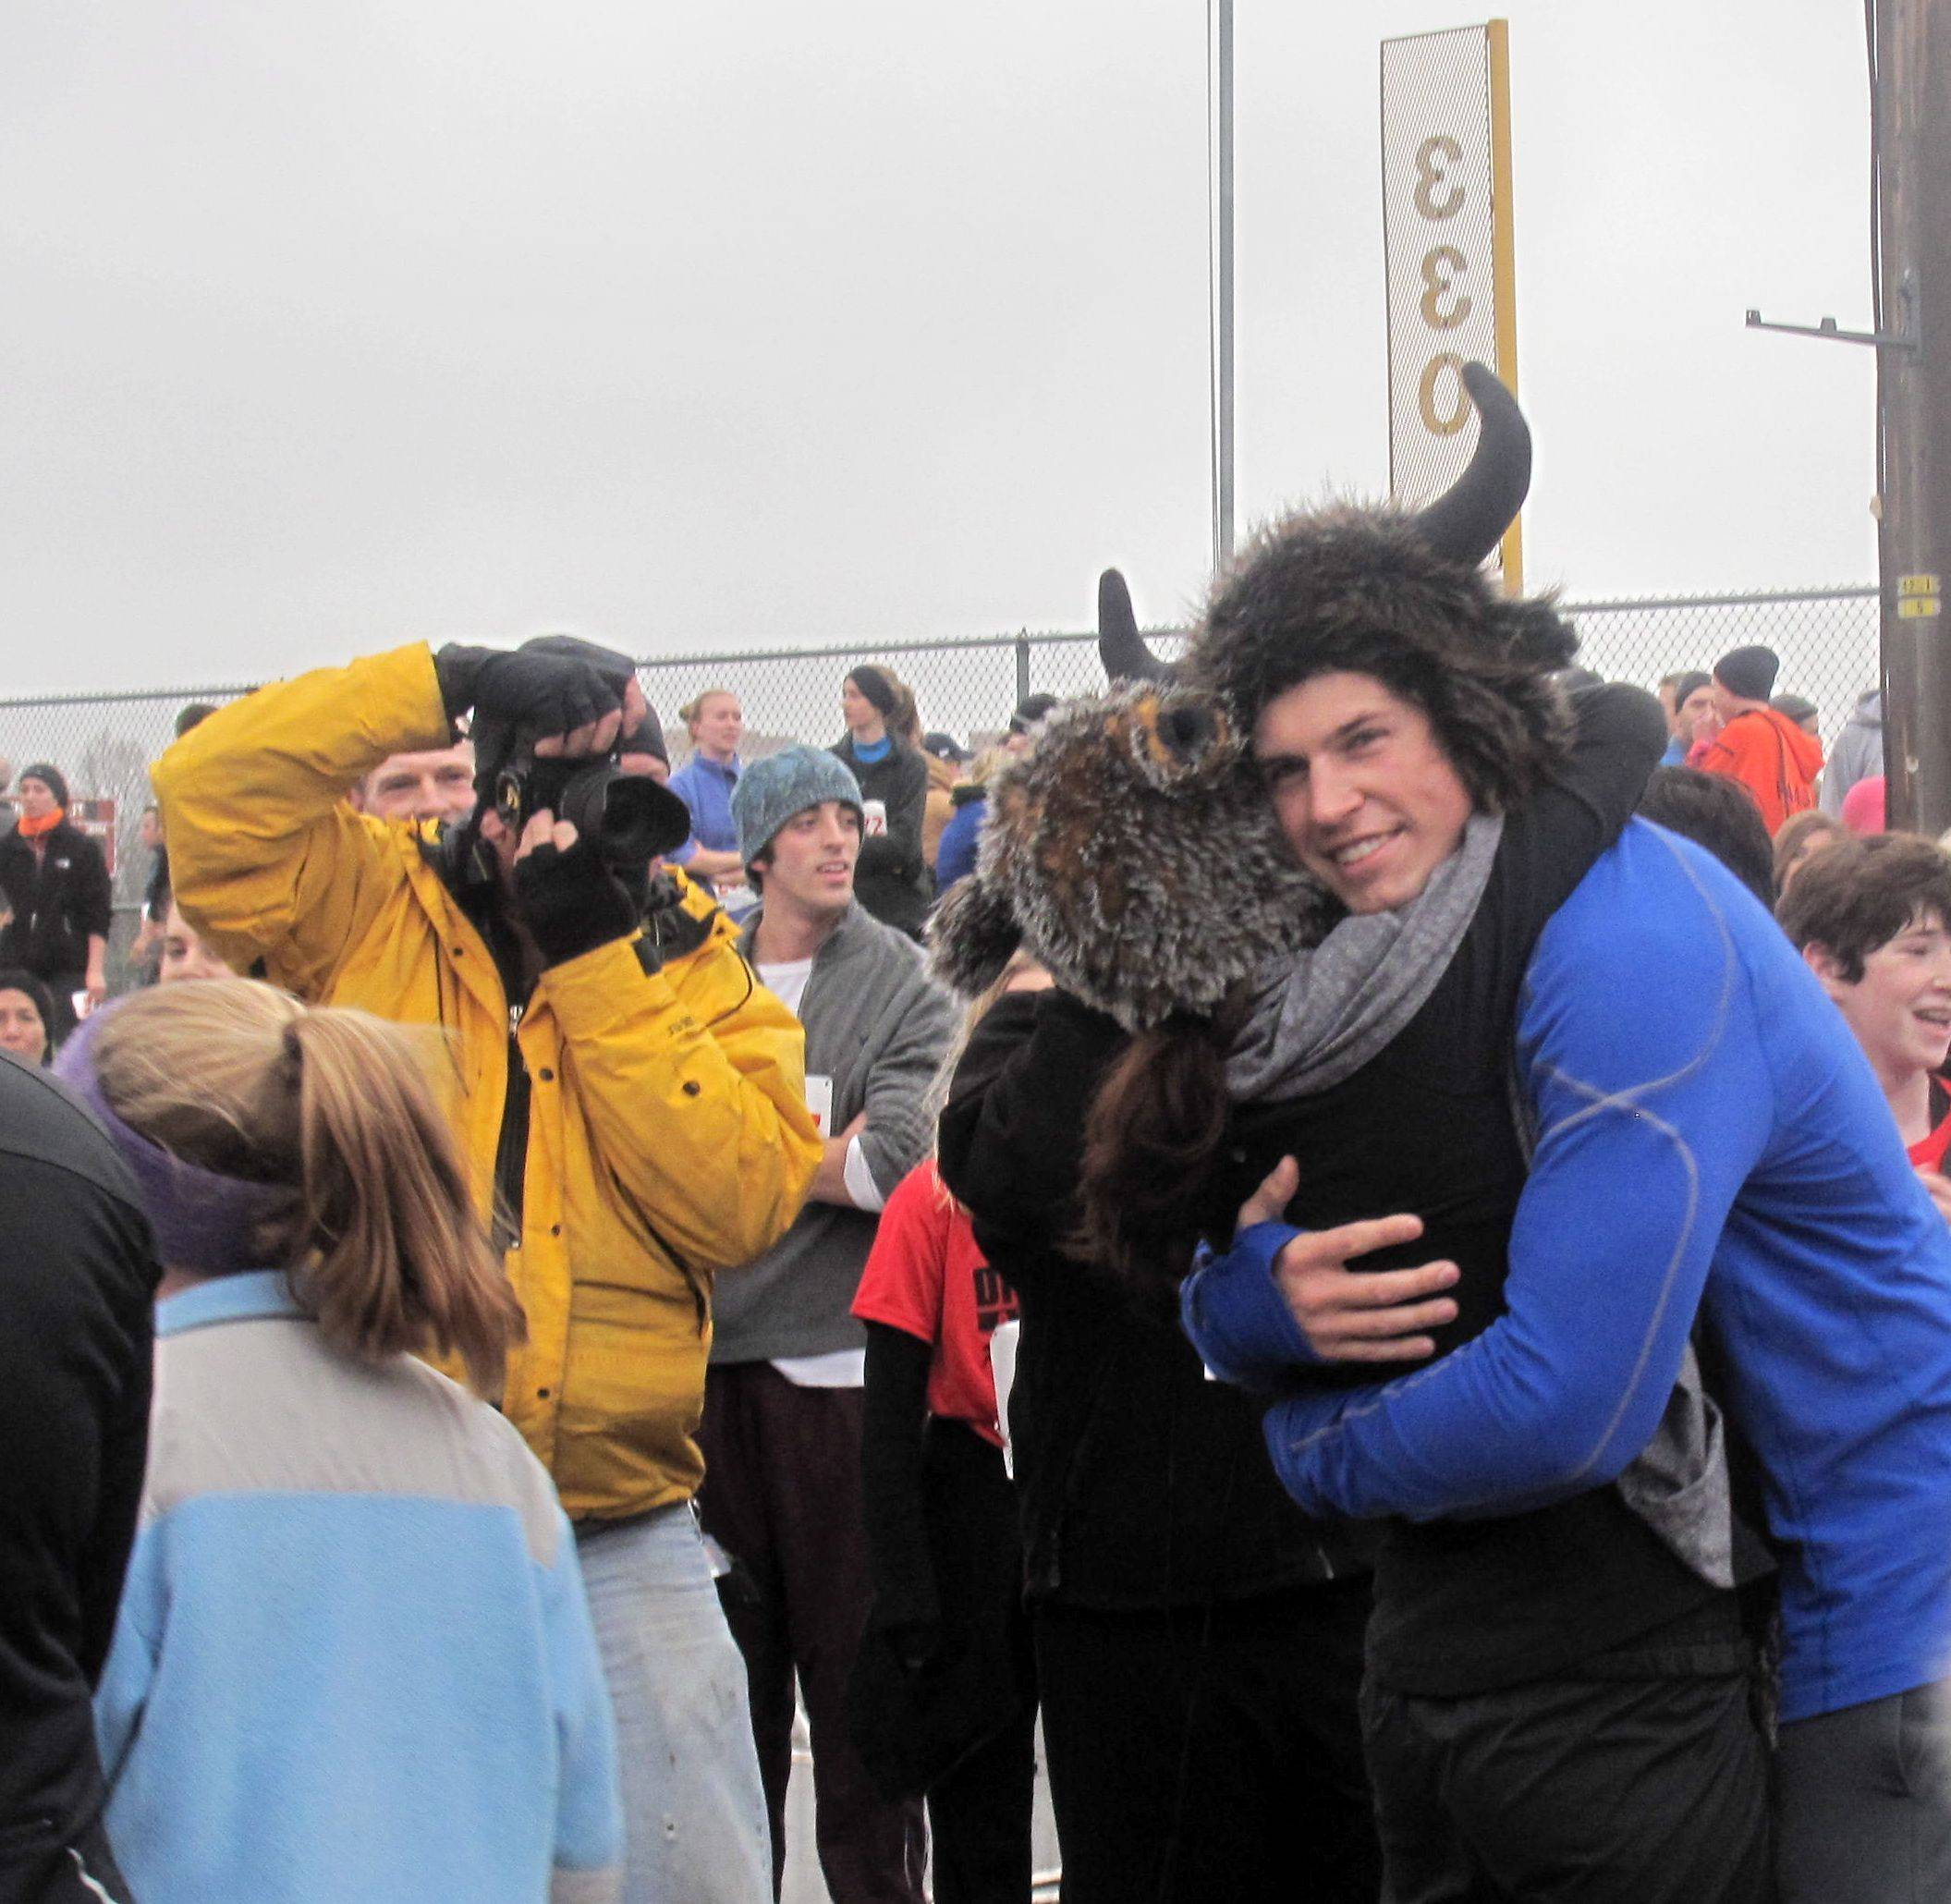 Warrenville resident Colton Antos hugs his fiancee, Brittany Acosta, after she accepted a marriage proposal after Thursday's Turkey Trot 5K run in Naperville.